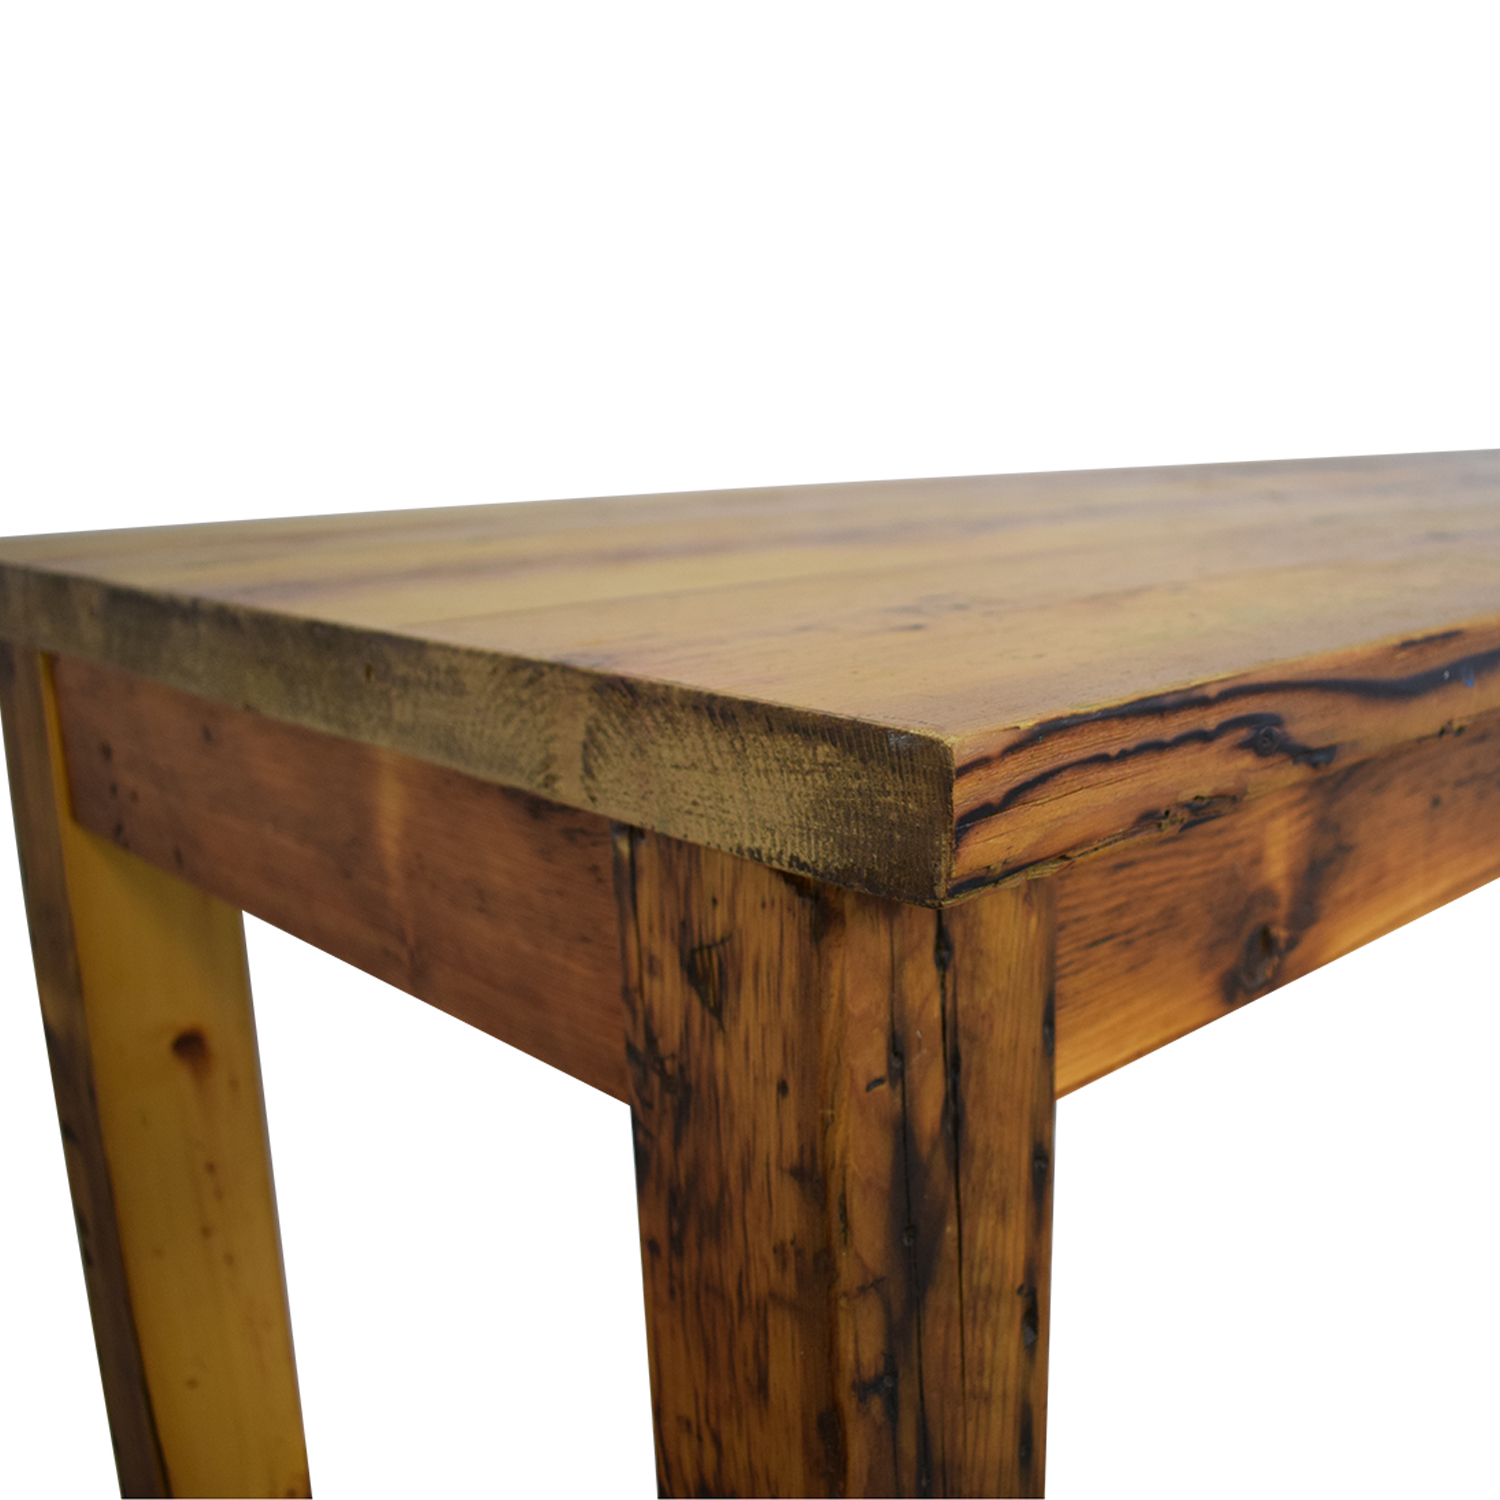 shop Olde Good Things Olde Good Things Rustic Square Leg Farm Table online